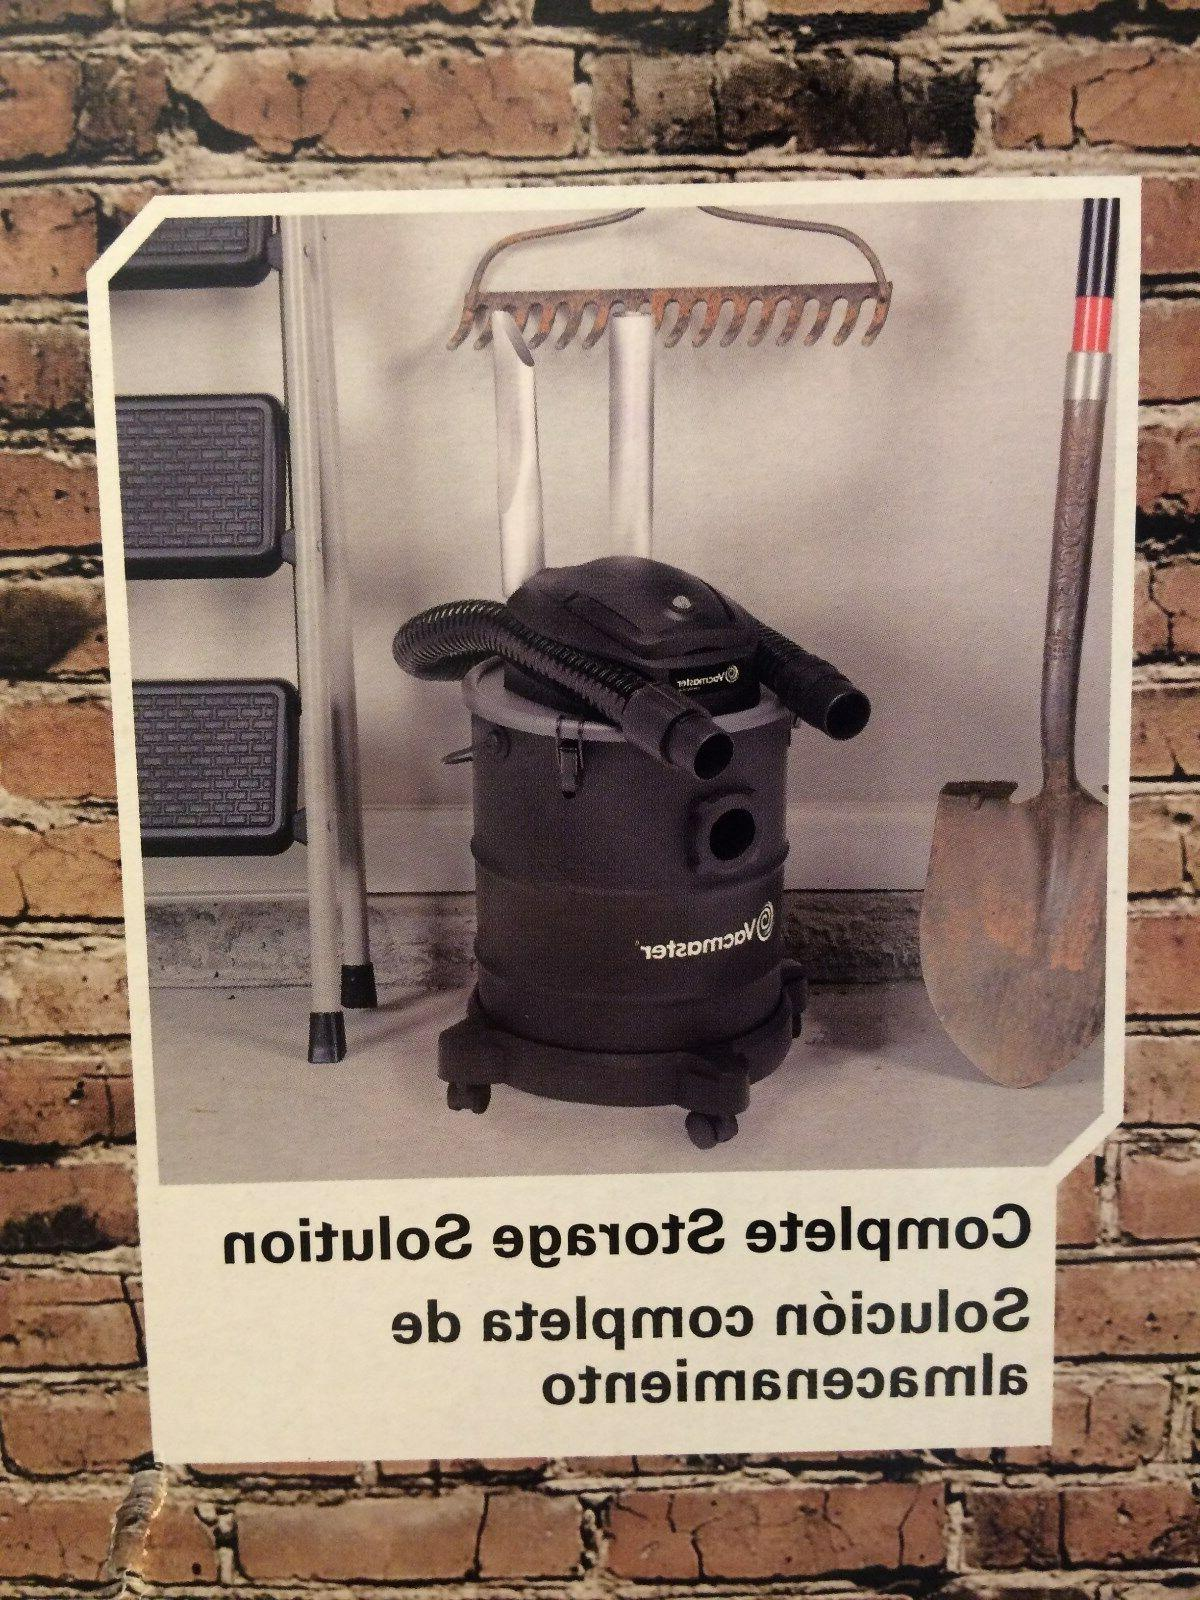 FIREPLACE STOVE VACUUM CLEANER POT